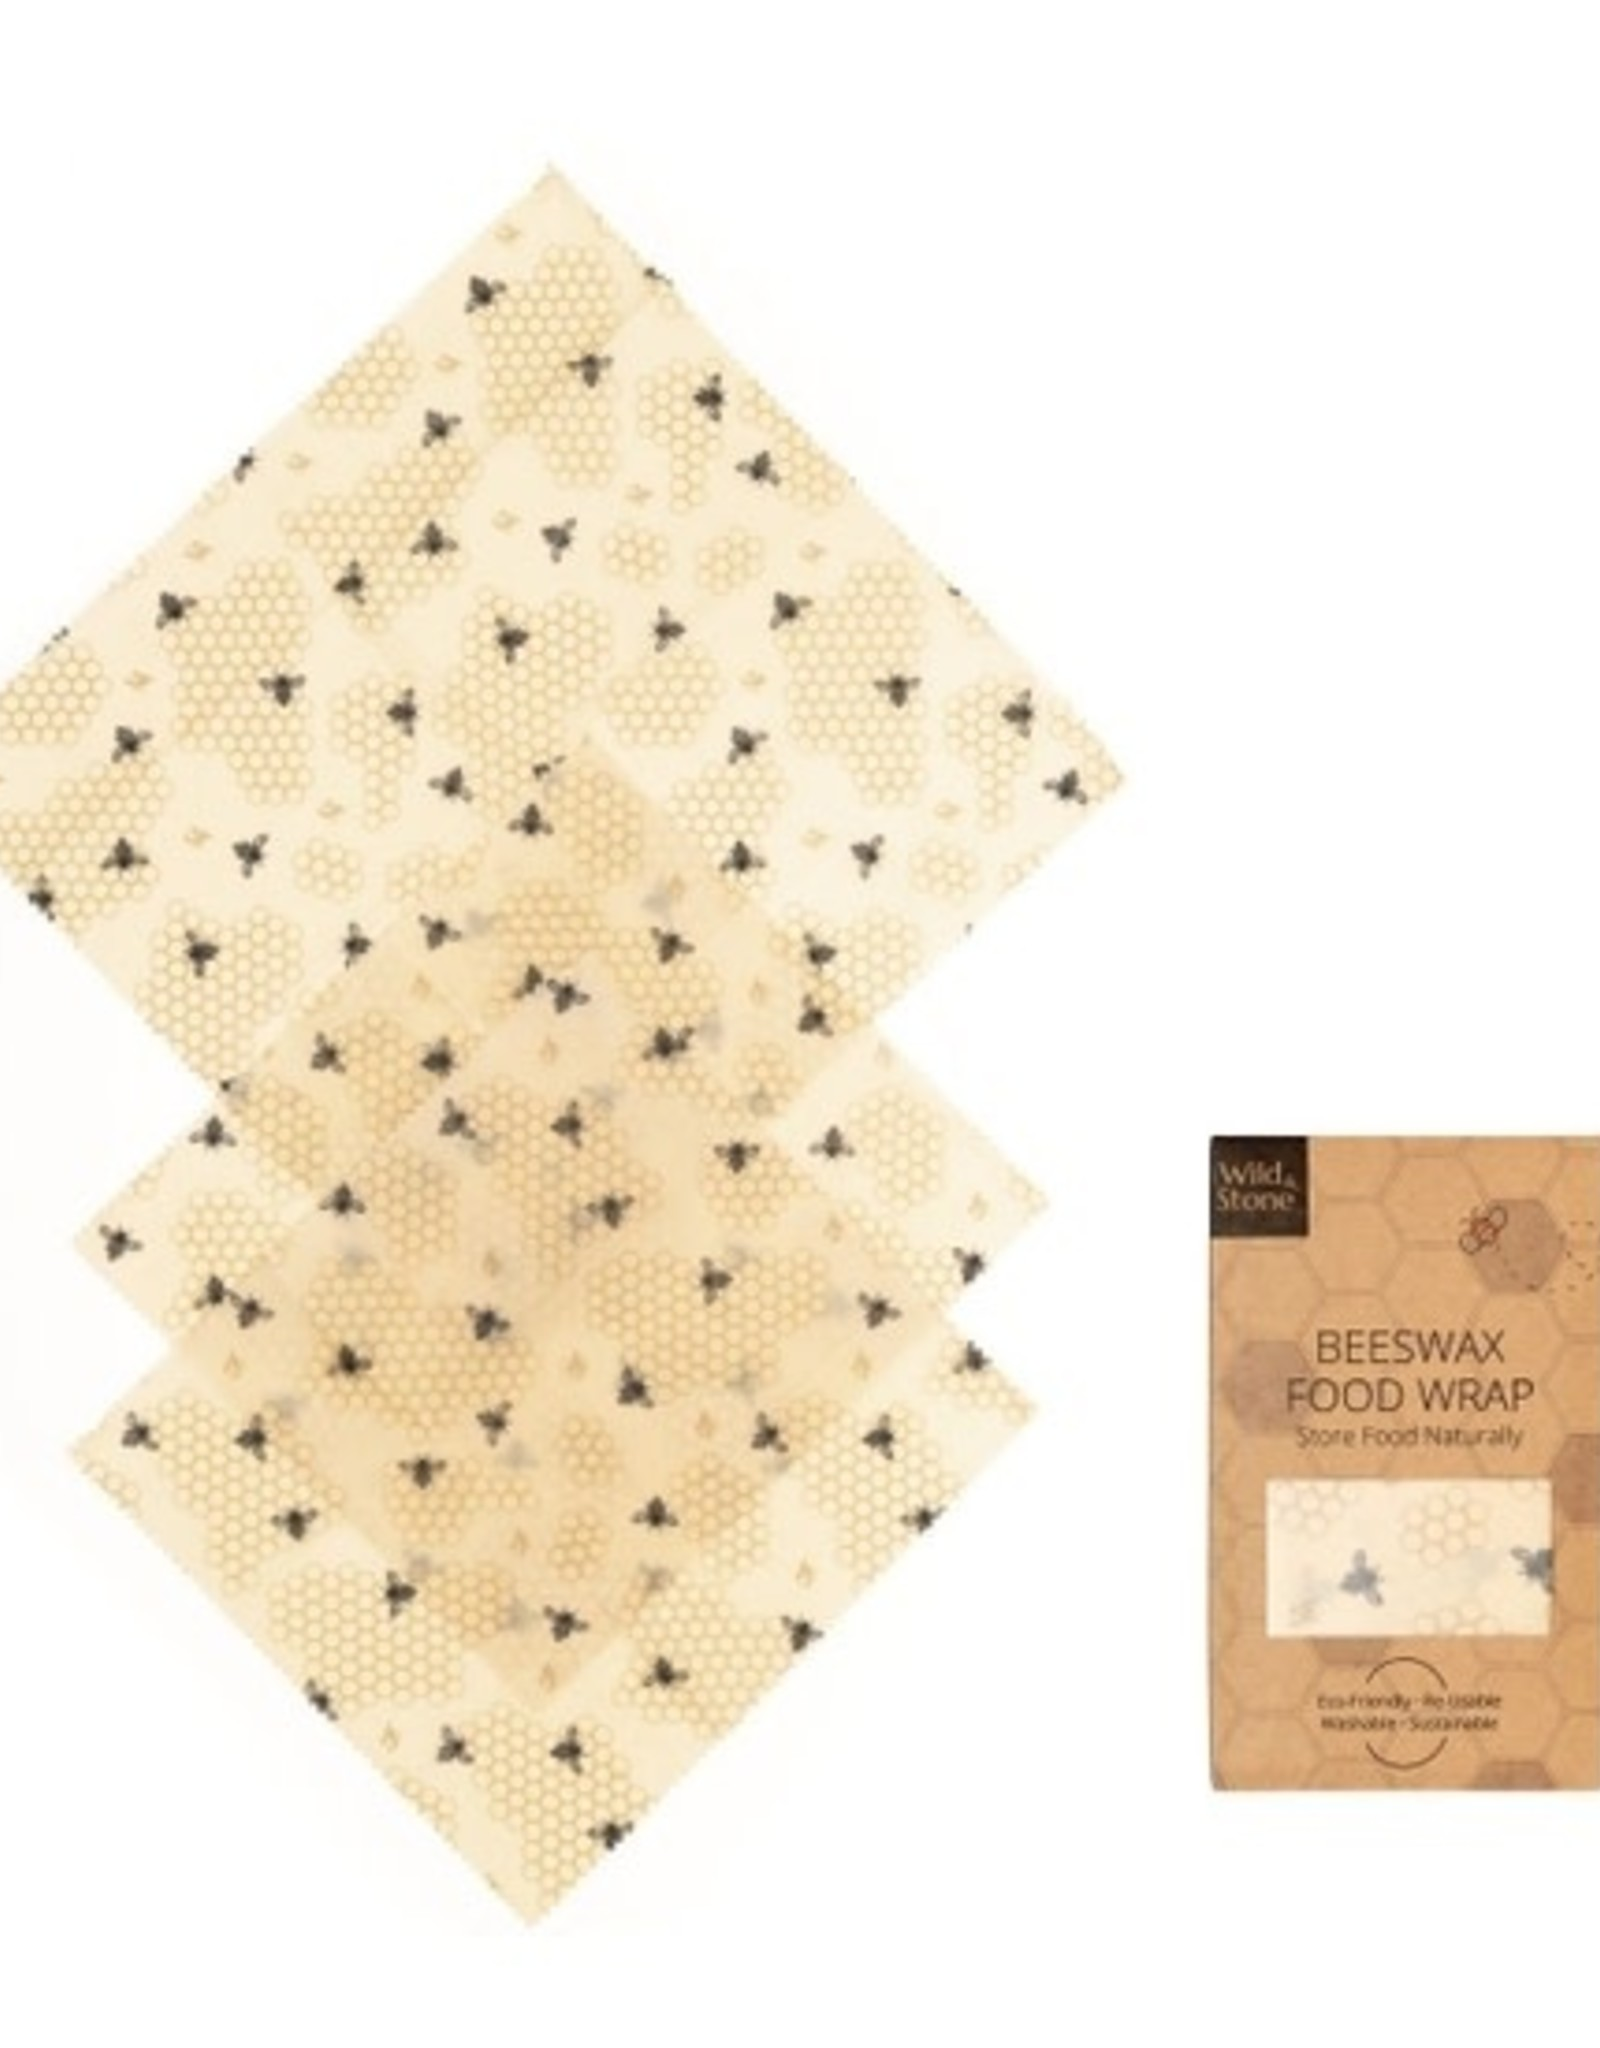 Wild & Stone Natural Beeswax Food Wraps ( 3 pack)